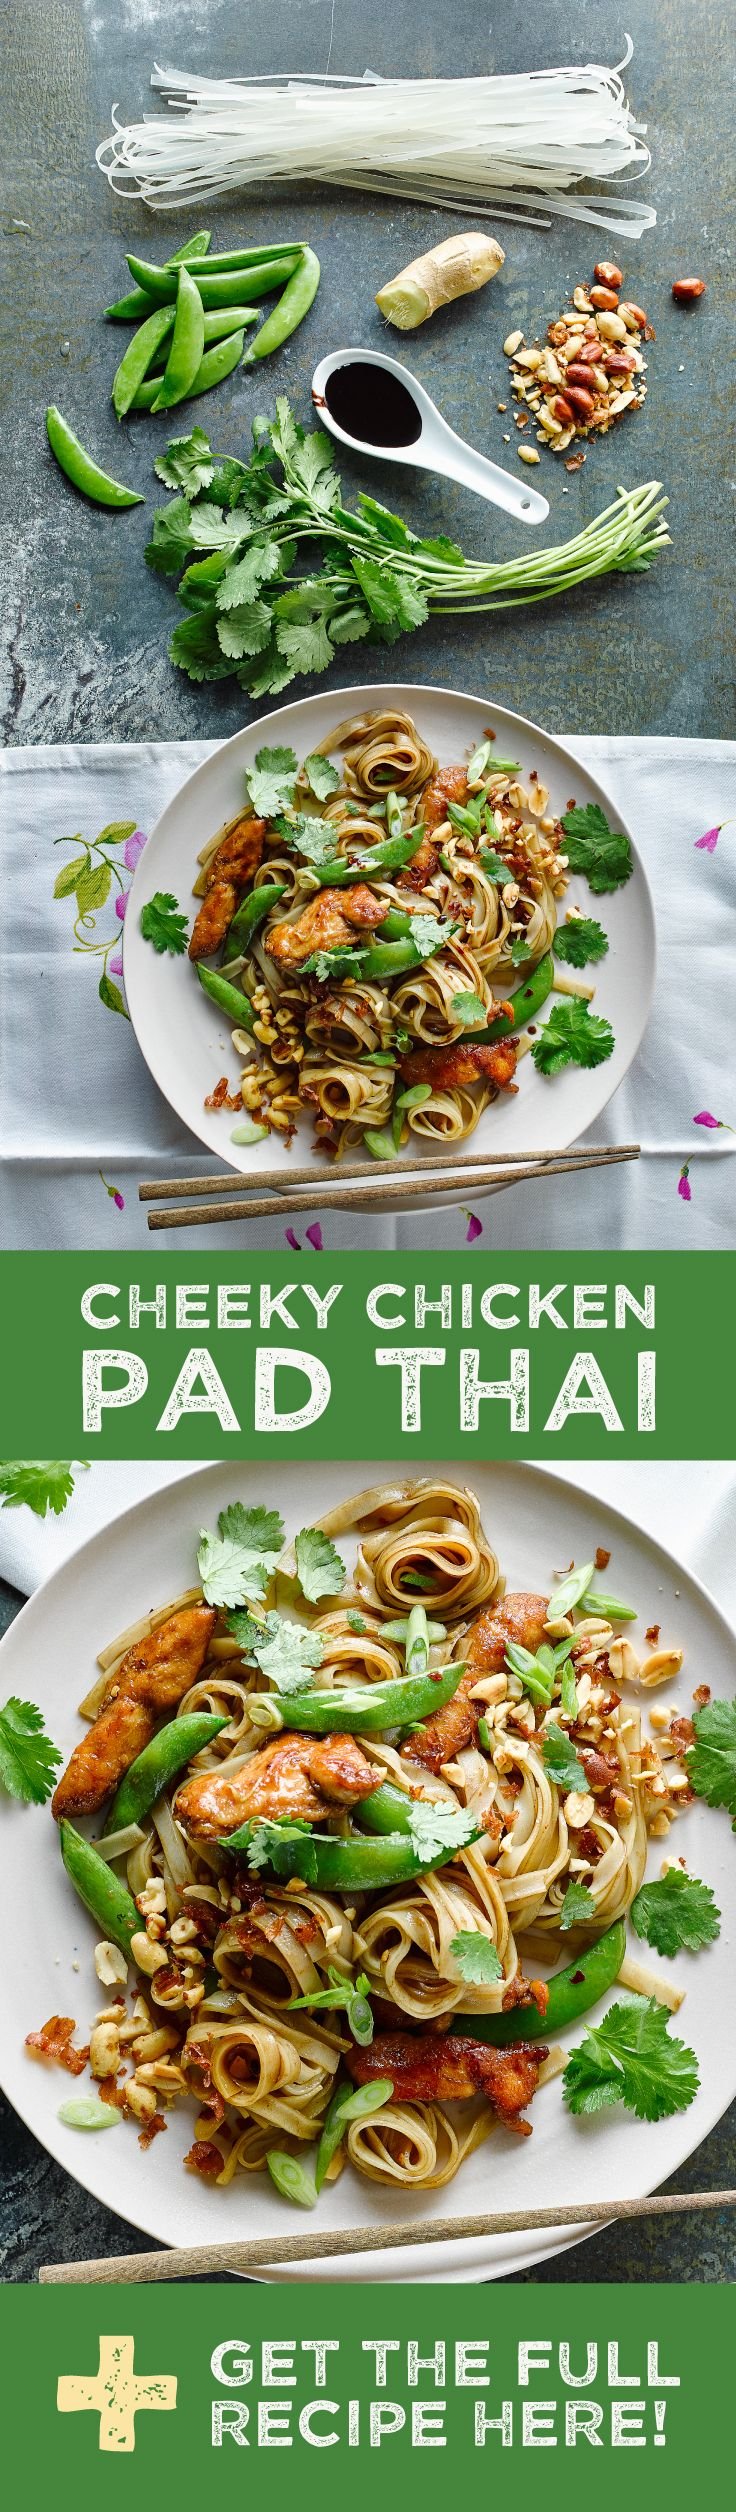 Our version of Pad Thai uses Thai noodles, juicy chicken and sugarsnap peas for sweetness and crunch. Not forgetting one of the key flavours - tamarind. Originally from Africa, tamarind has that sweet